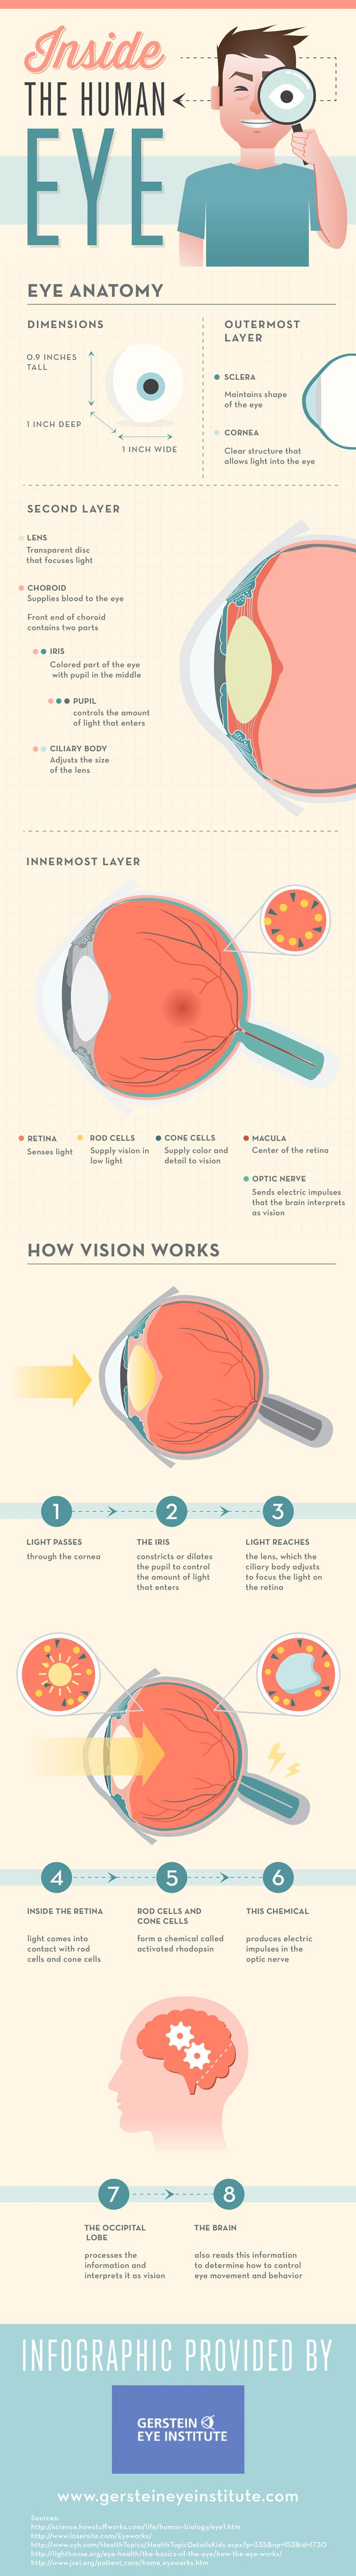 Inside The Human Eye (Infographic)